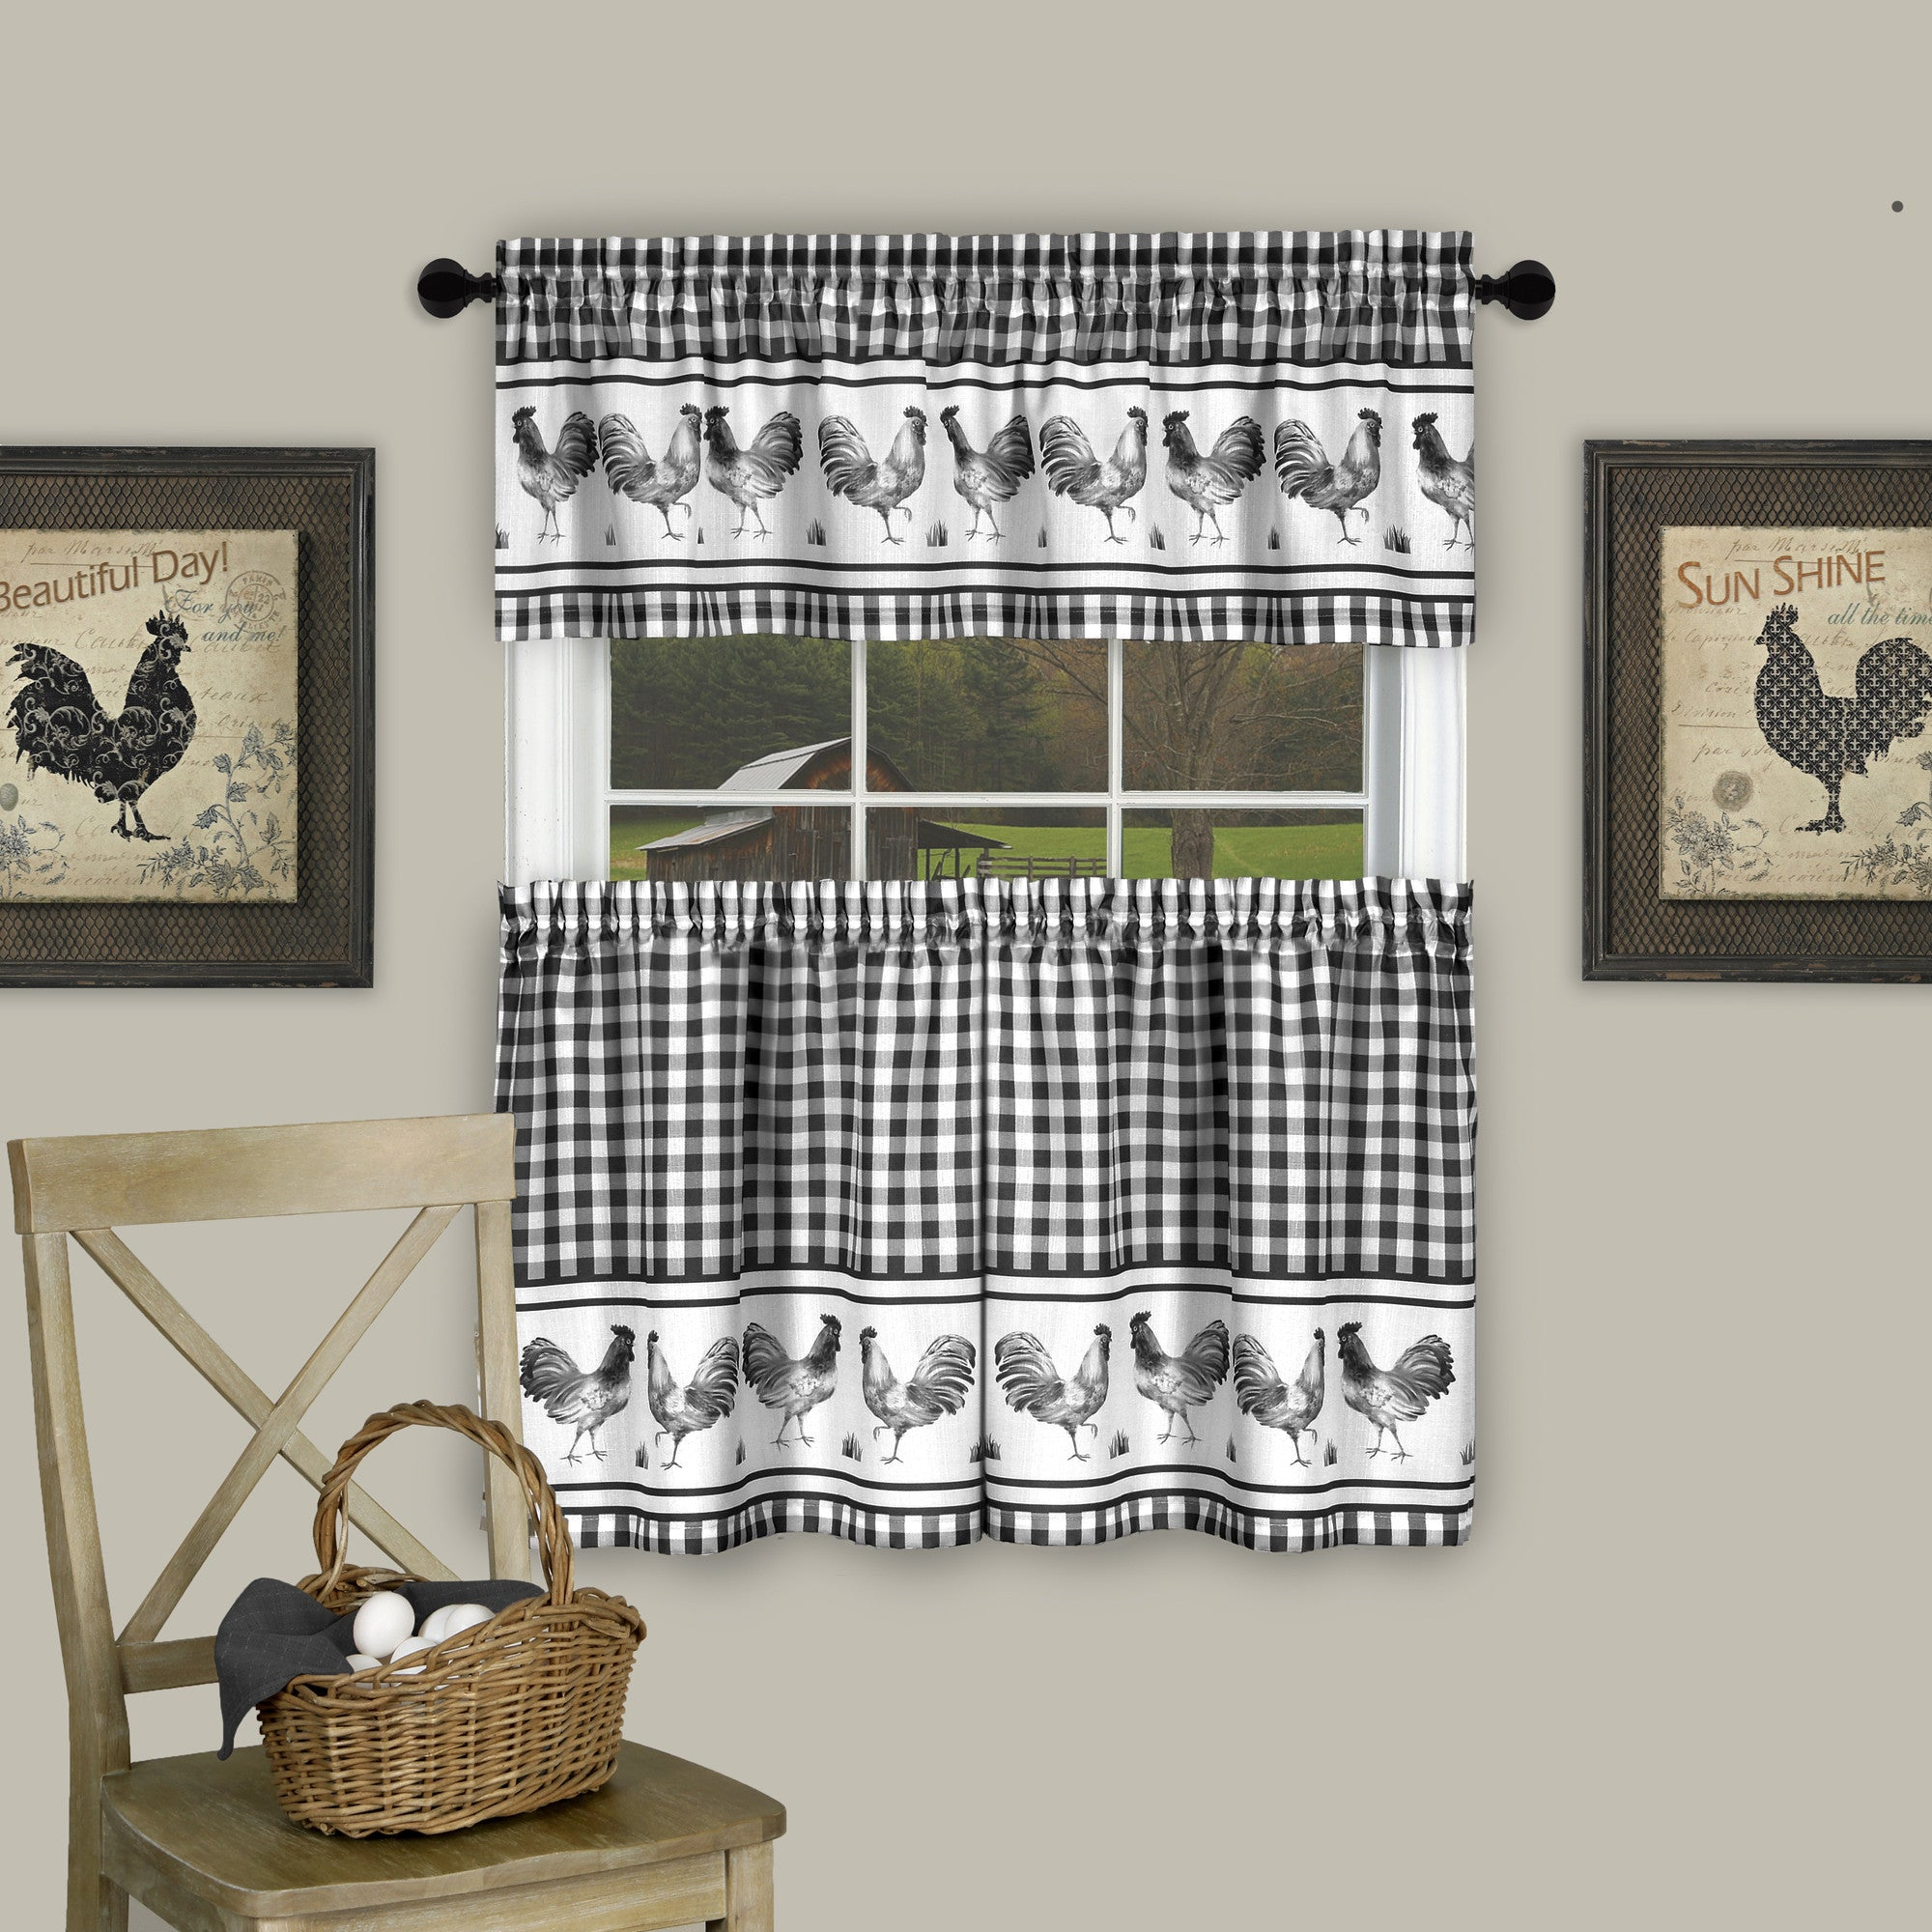 Barnyard Rod Pocket Tier&Valance Set - Tier/Valance Set/Black/058x024 C40735- Marburn Curtains